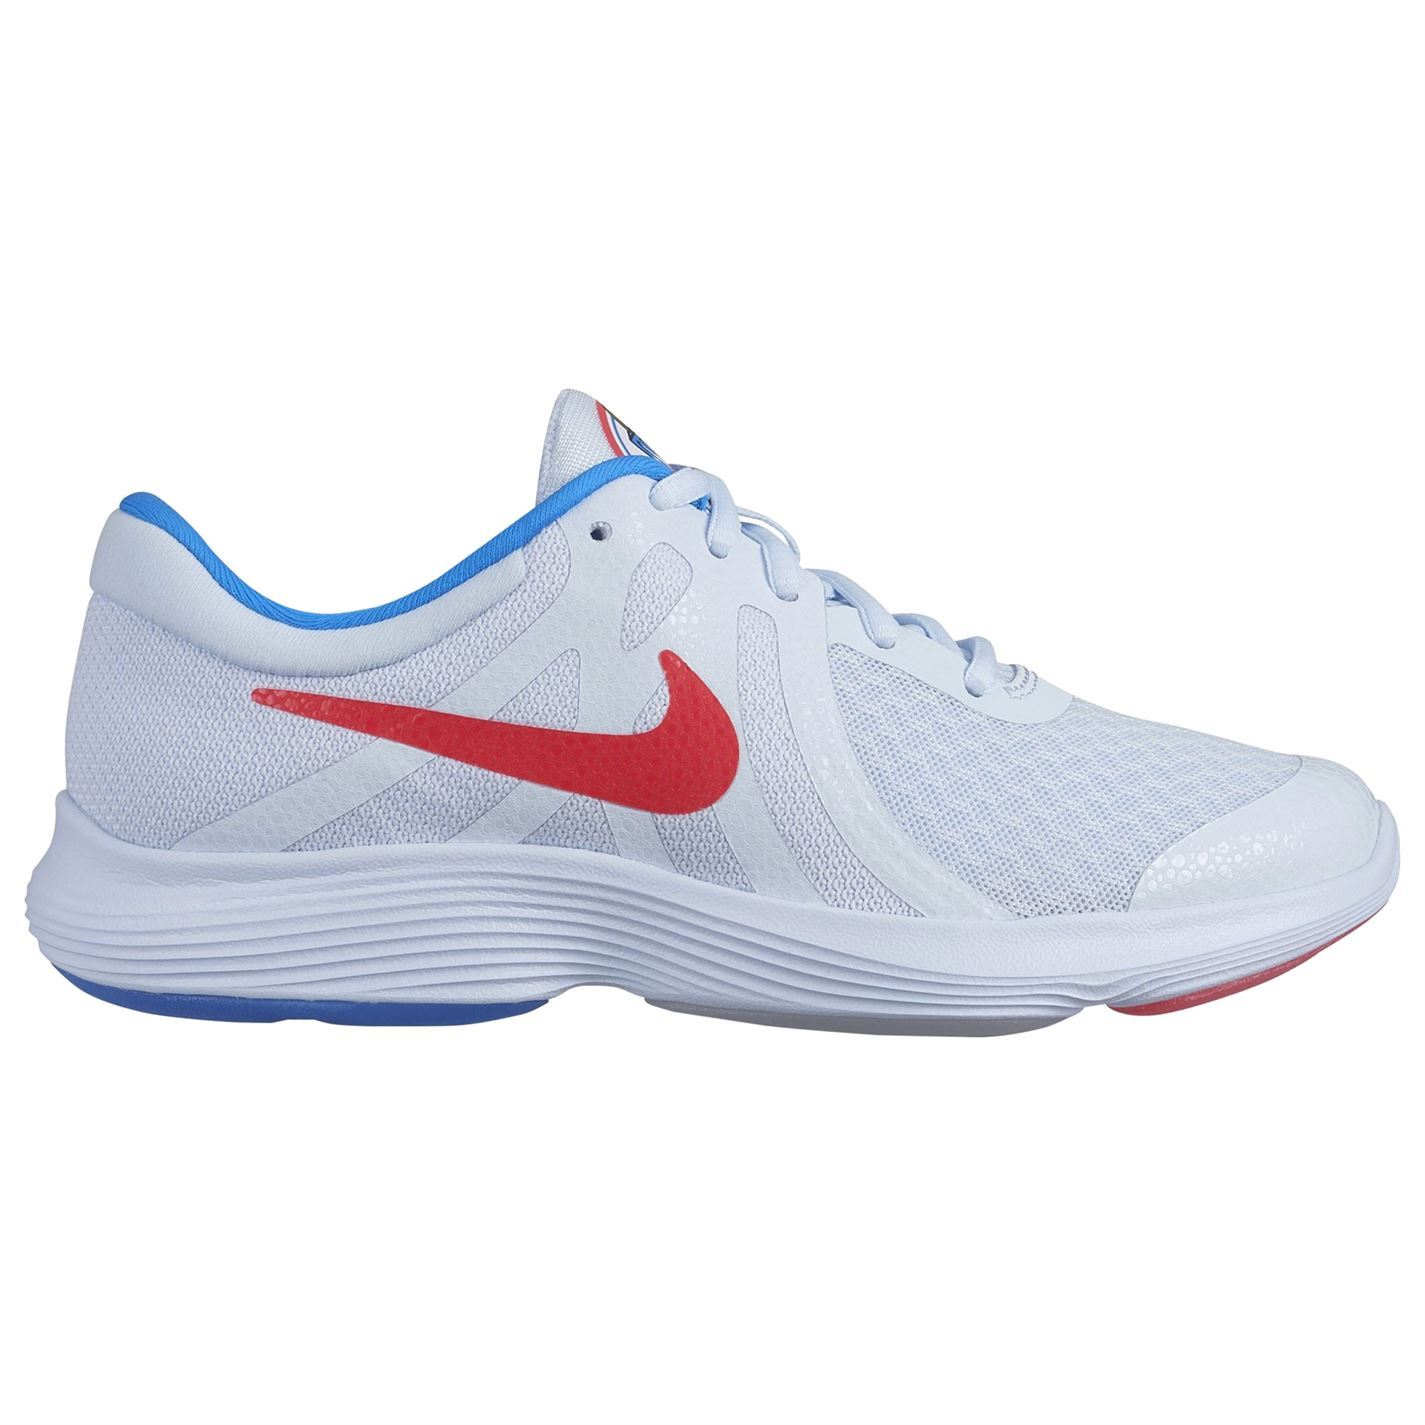 me quejo Favor prestar  Nike Revolution 4 Heat Check Junior Trainers Boys Shoes Running Blue  Footwear | eBay